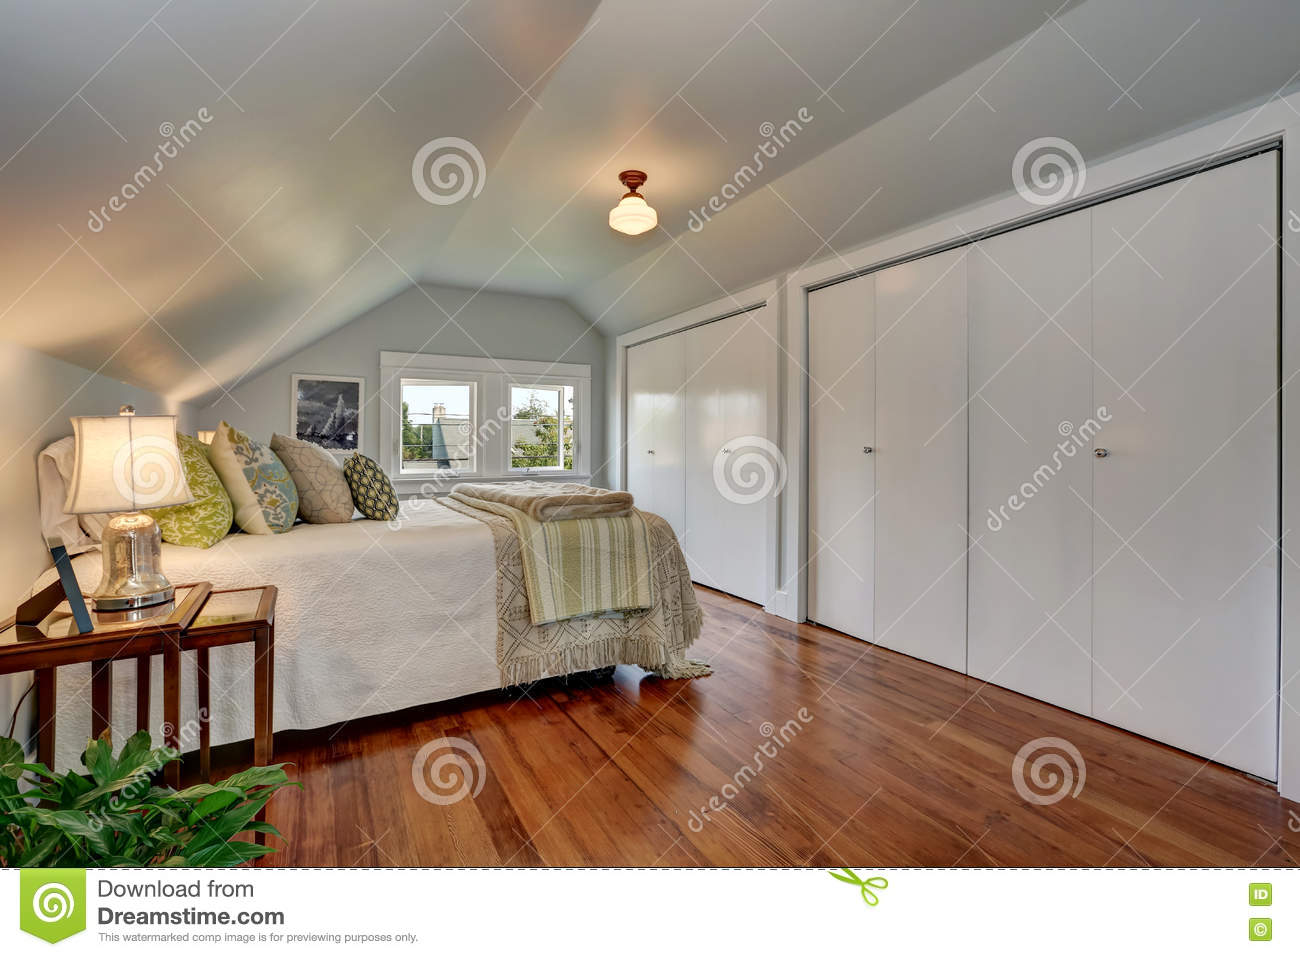 Simple design of attic bedroom with vaulted ceiling for Simple attic design